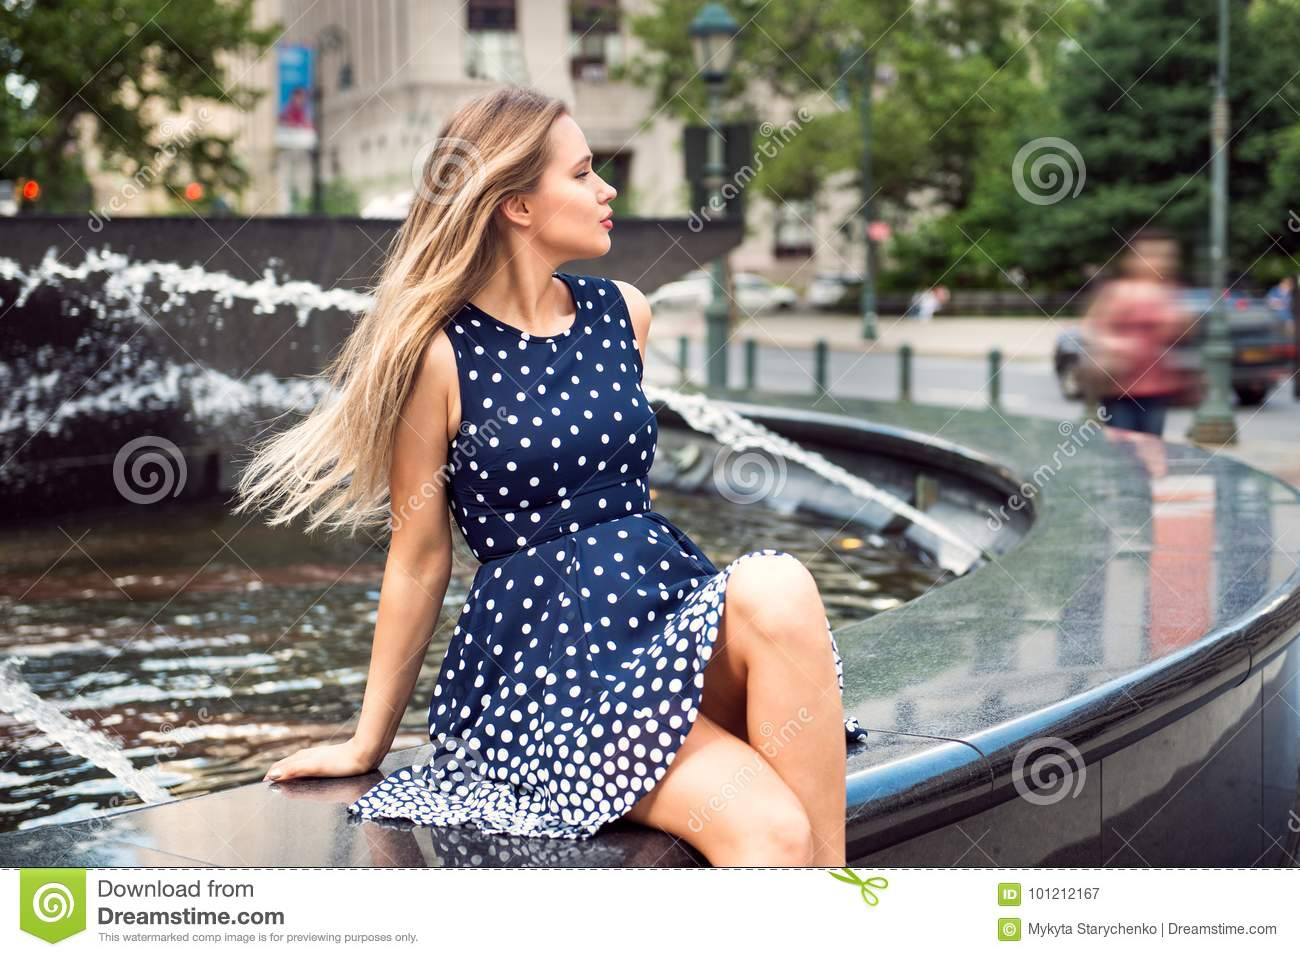 Beautiful woman with long blond hair sitting in the city park at summer time.